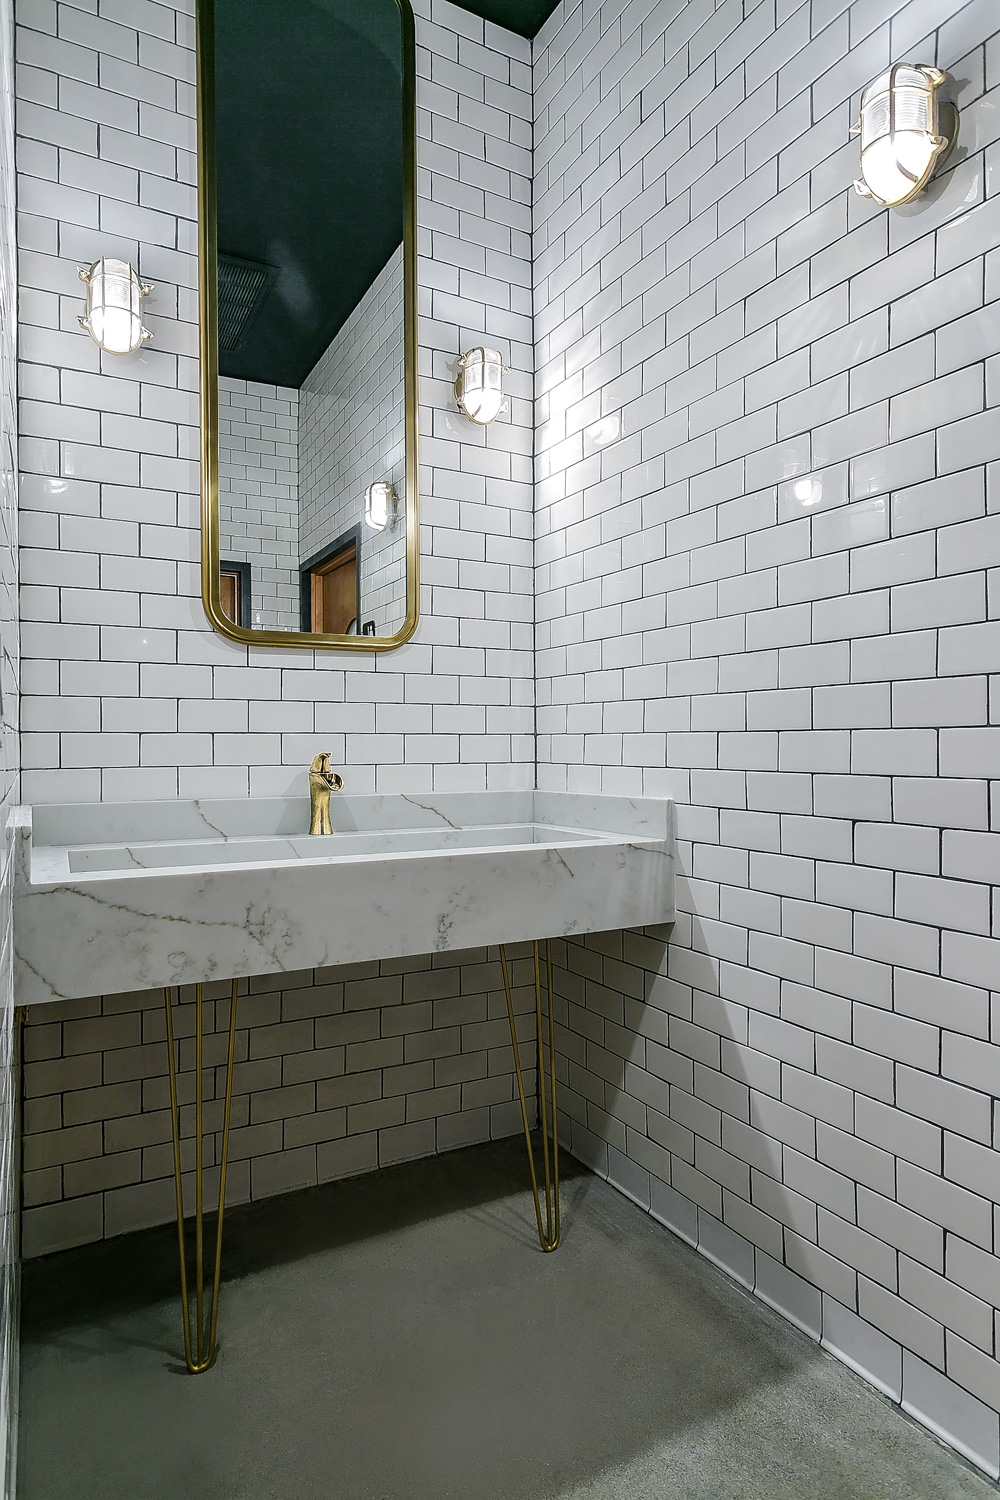 melrose-station-speakeasy-bar-in-hollywood-by-archillusion-design-los-angeles-restroom-custom-marble-sink-midcentury-brass-legs-brass-mirror-brass-lights